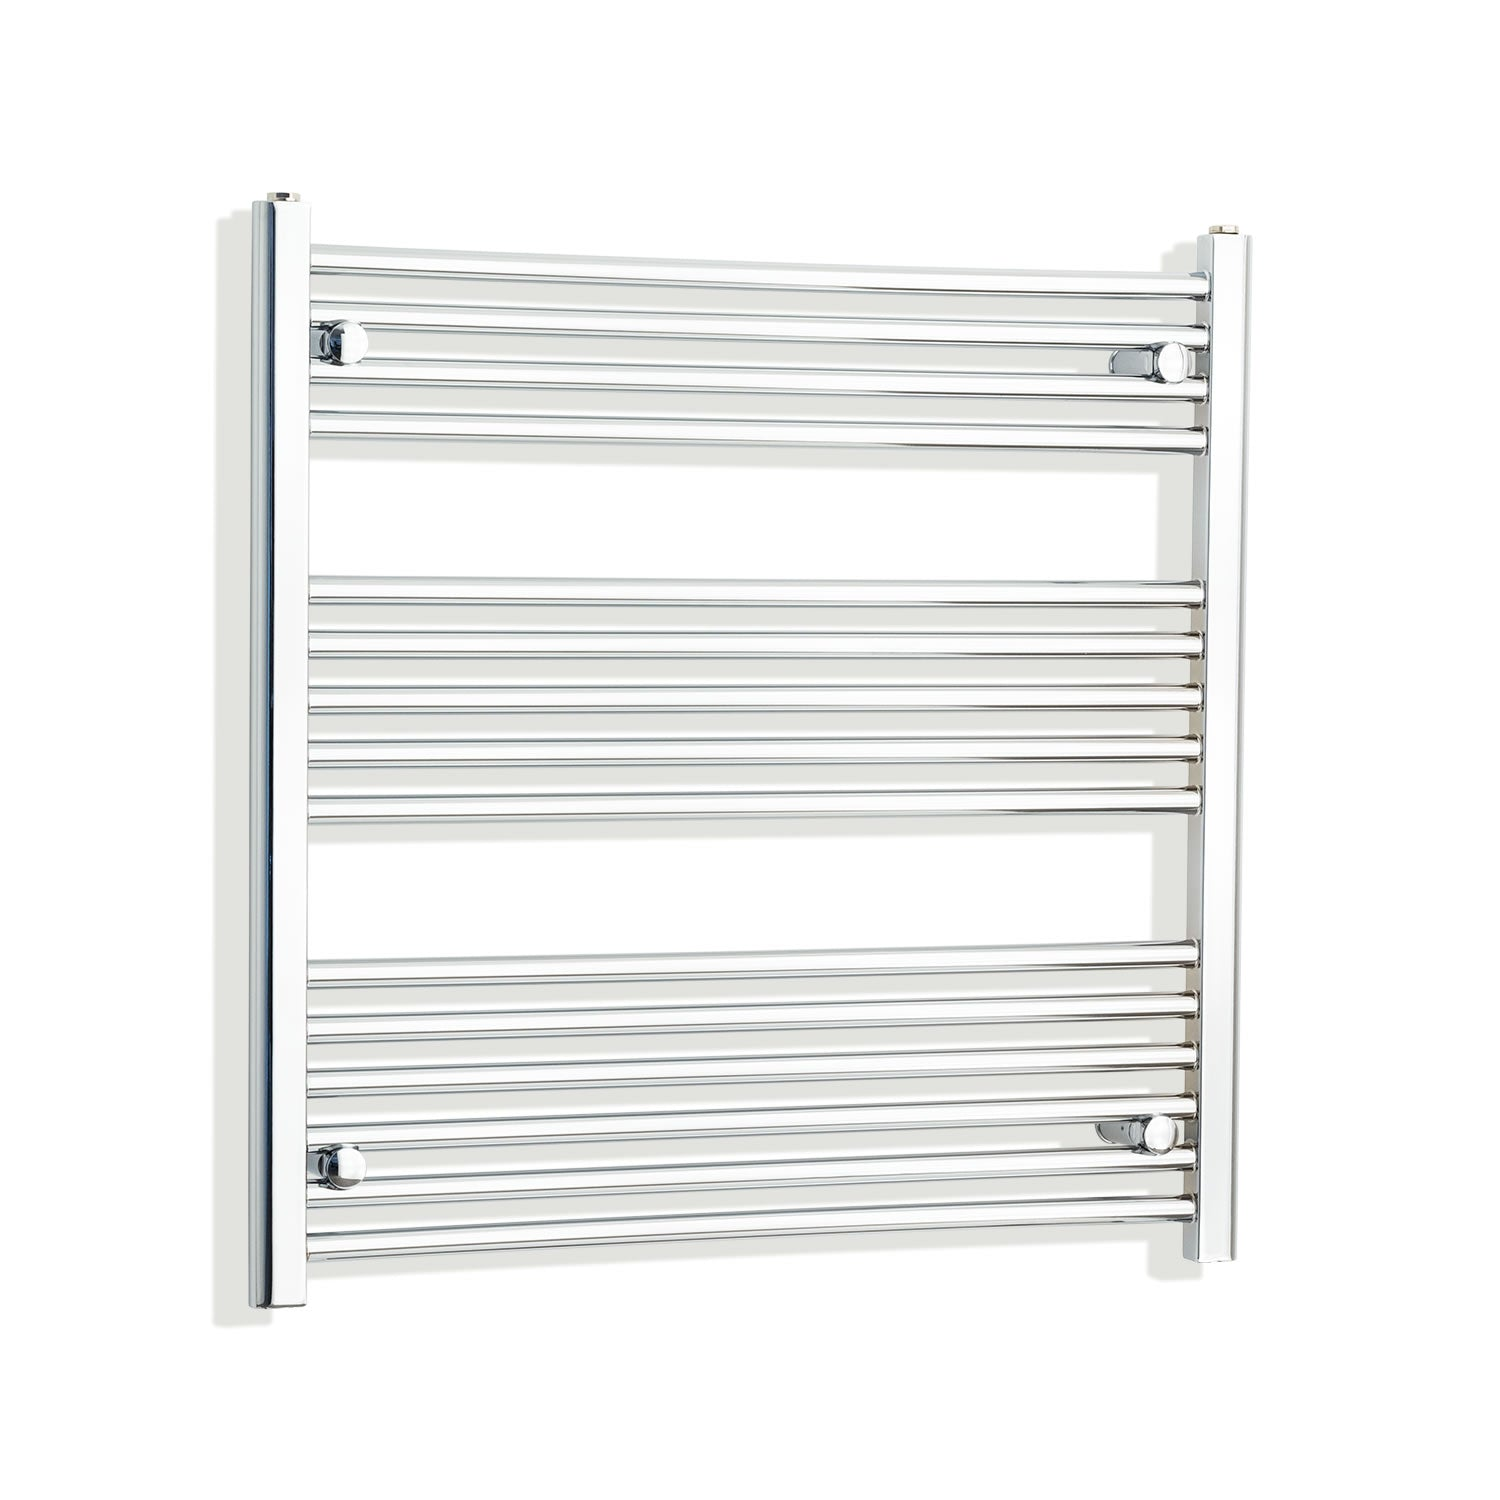 700mm Wide 800mm High Chrome Towel Rail Radiator